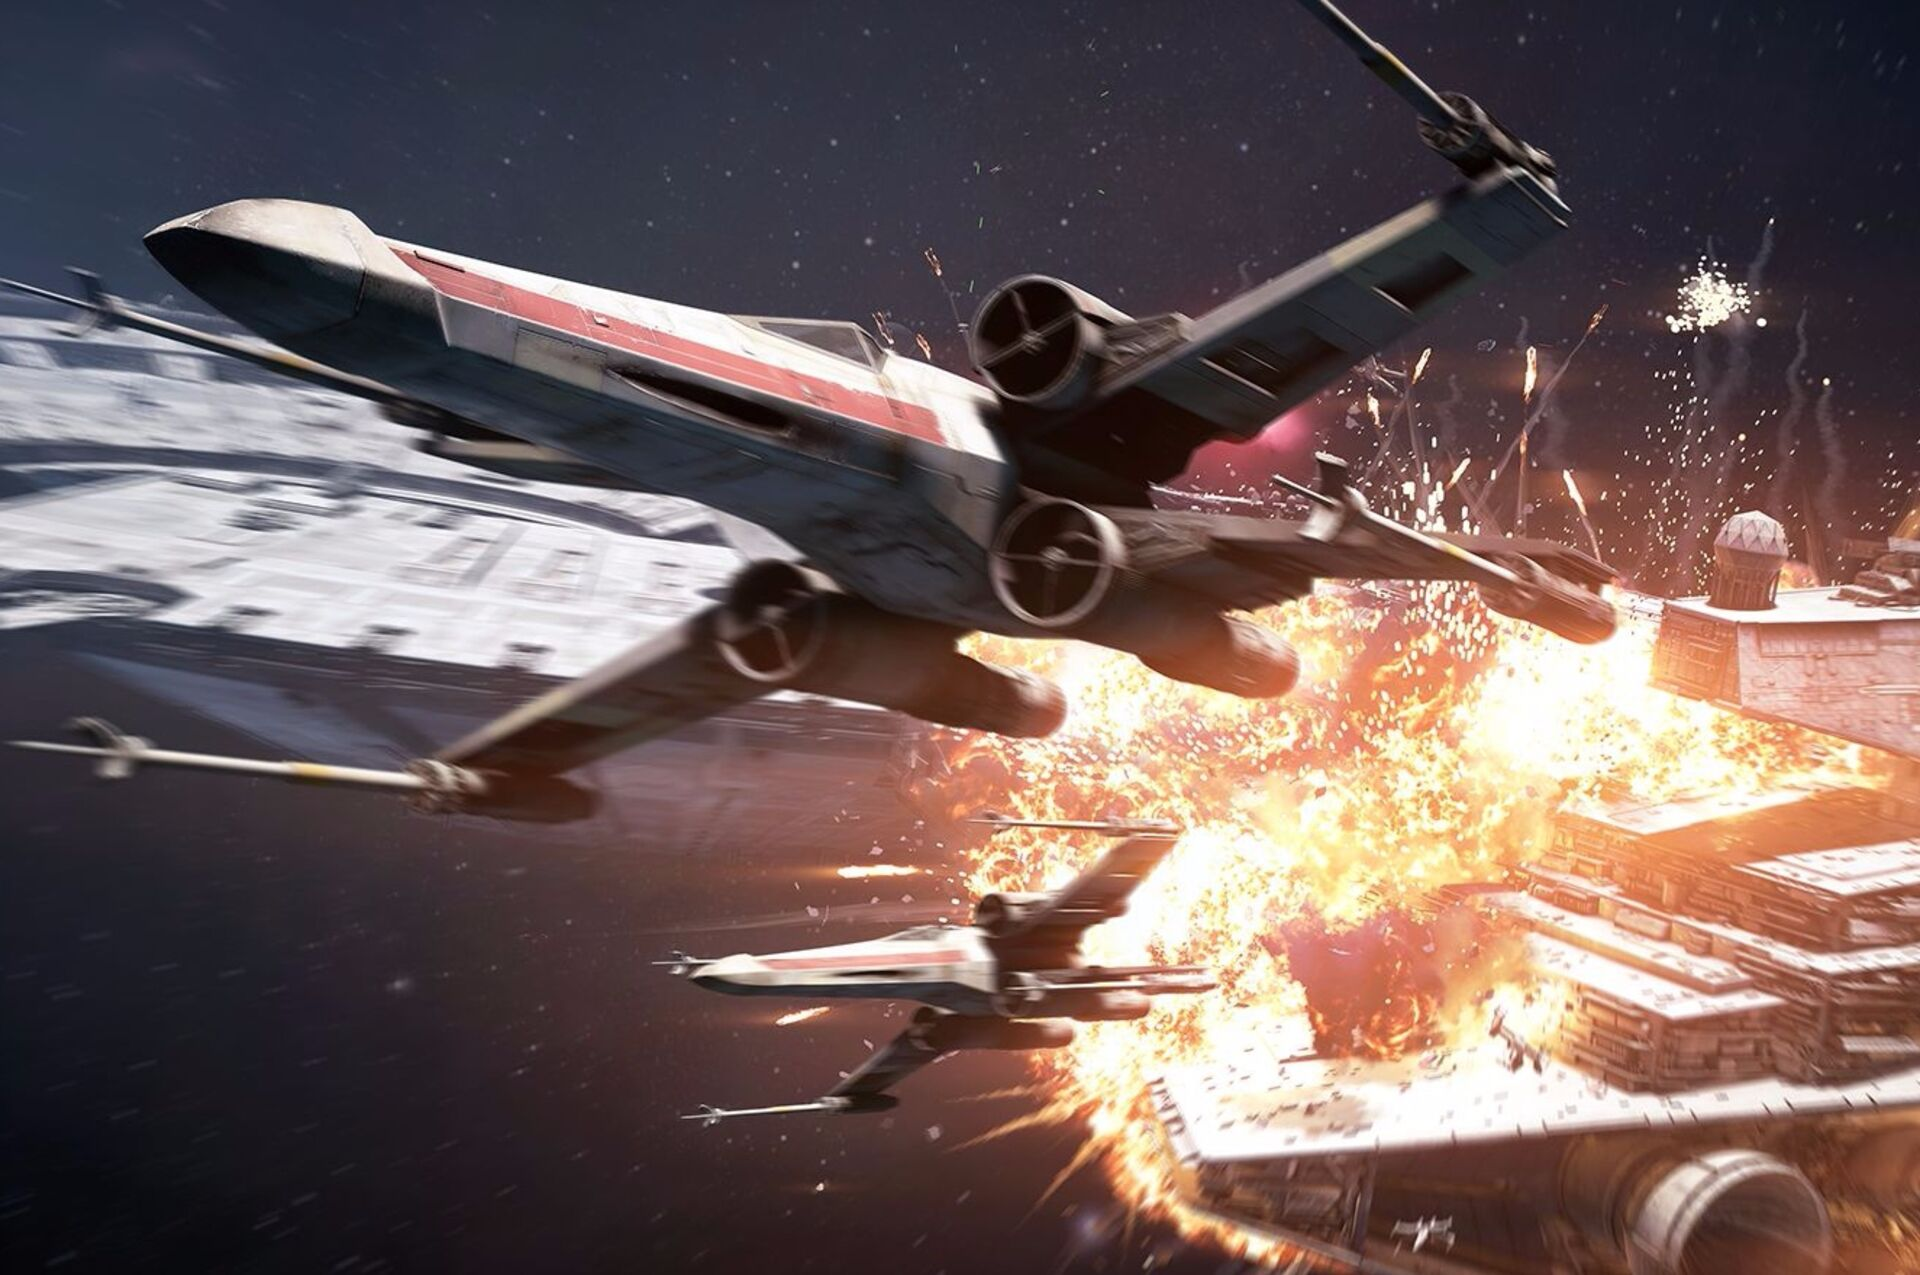 Star Wars Battlefront 2 S Space Battles Could Do With A Little